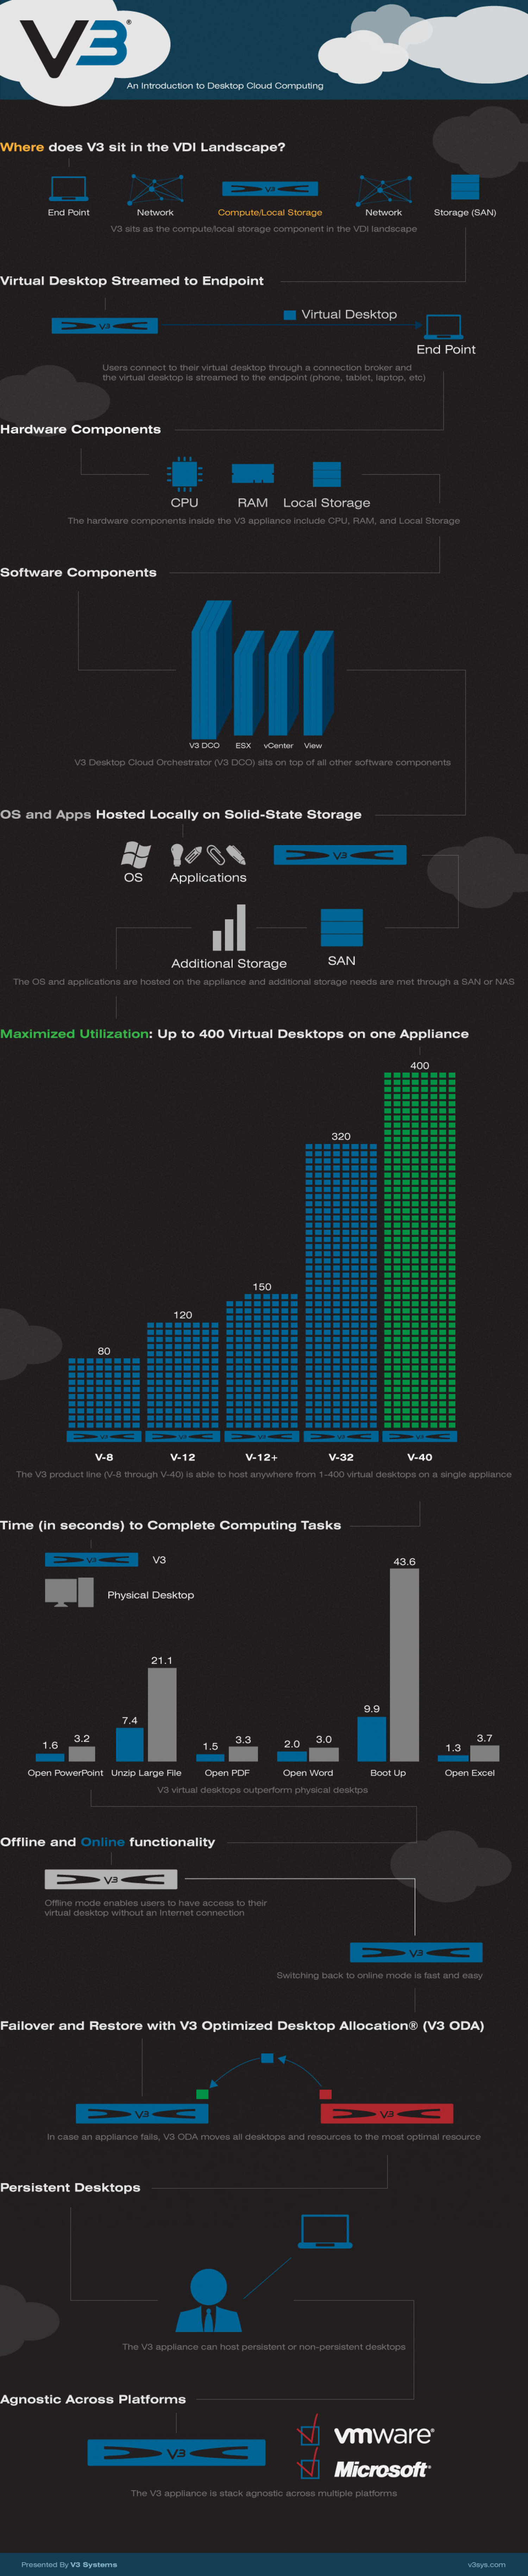 V3 Systems: Virtual Desktop Infrastructure Infographic